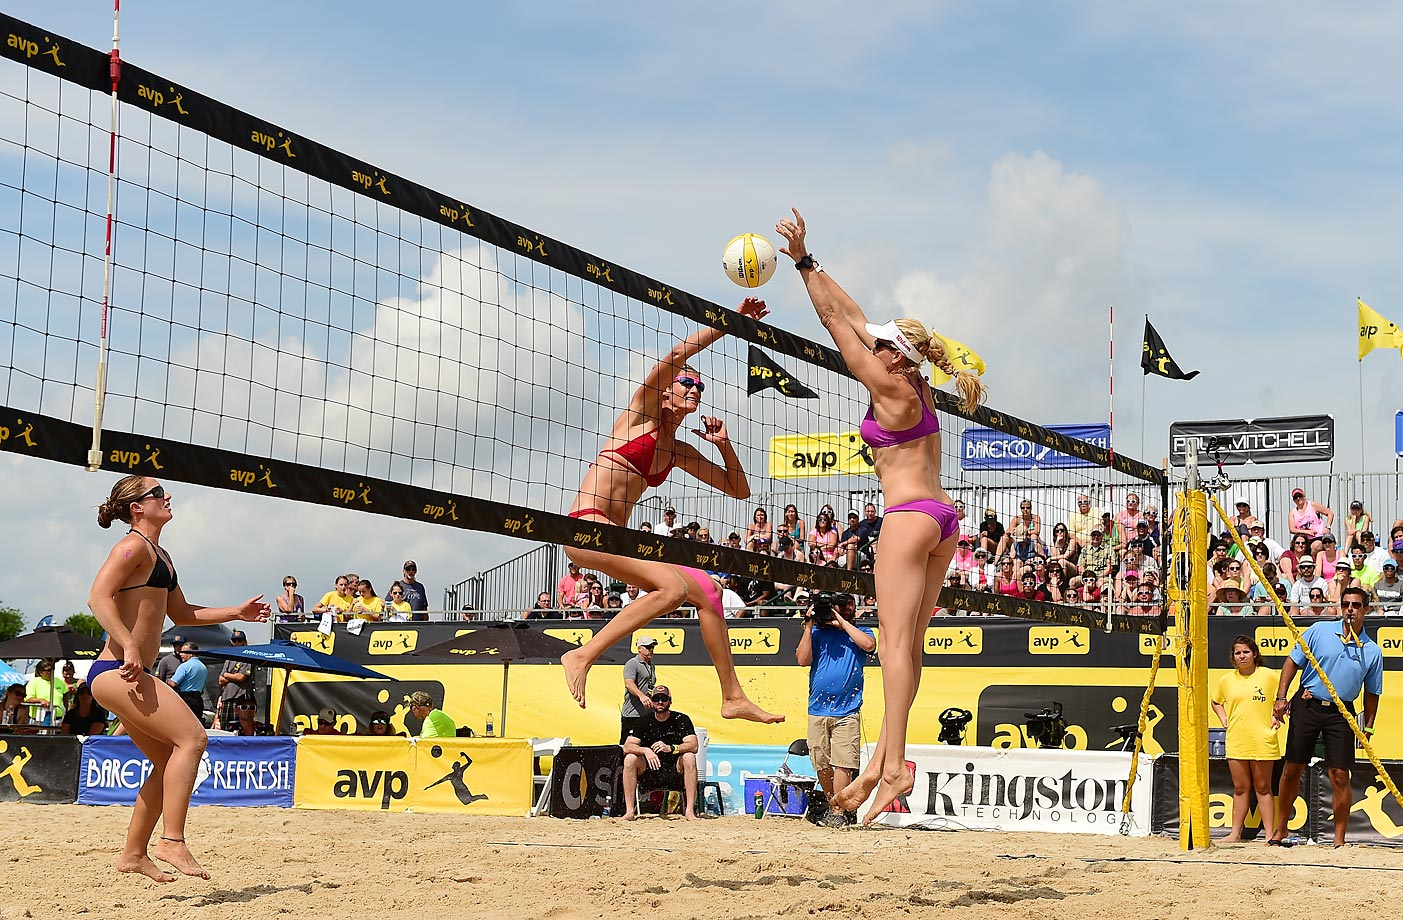 Kendra Van Zwieten watches Megan Wallin-Brockway try to put one past Kerri Walsh-Jennings.